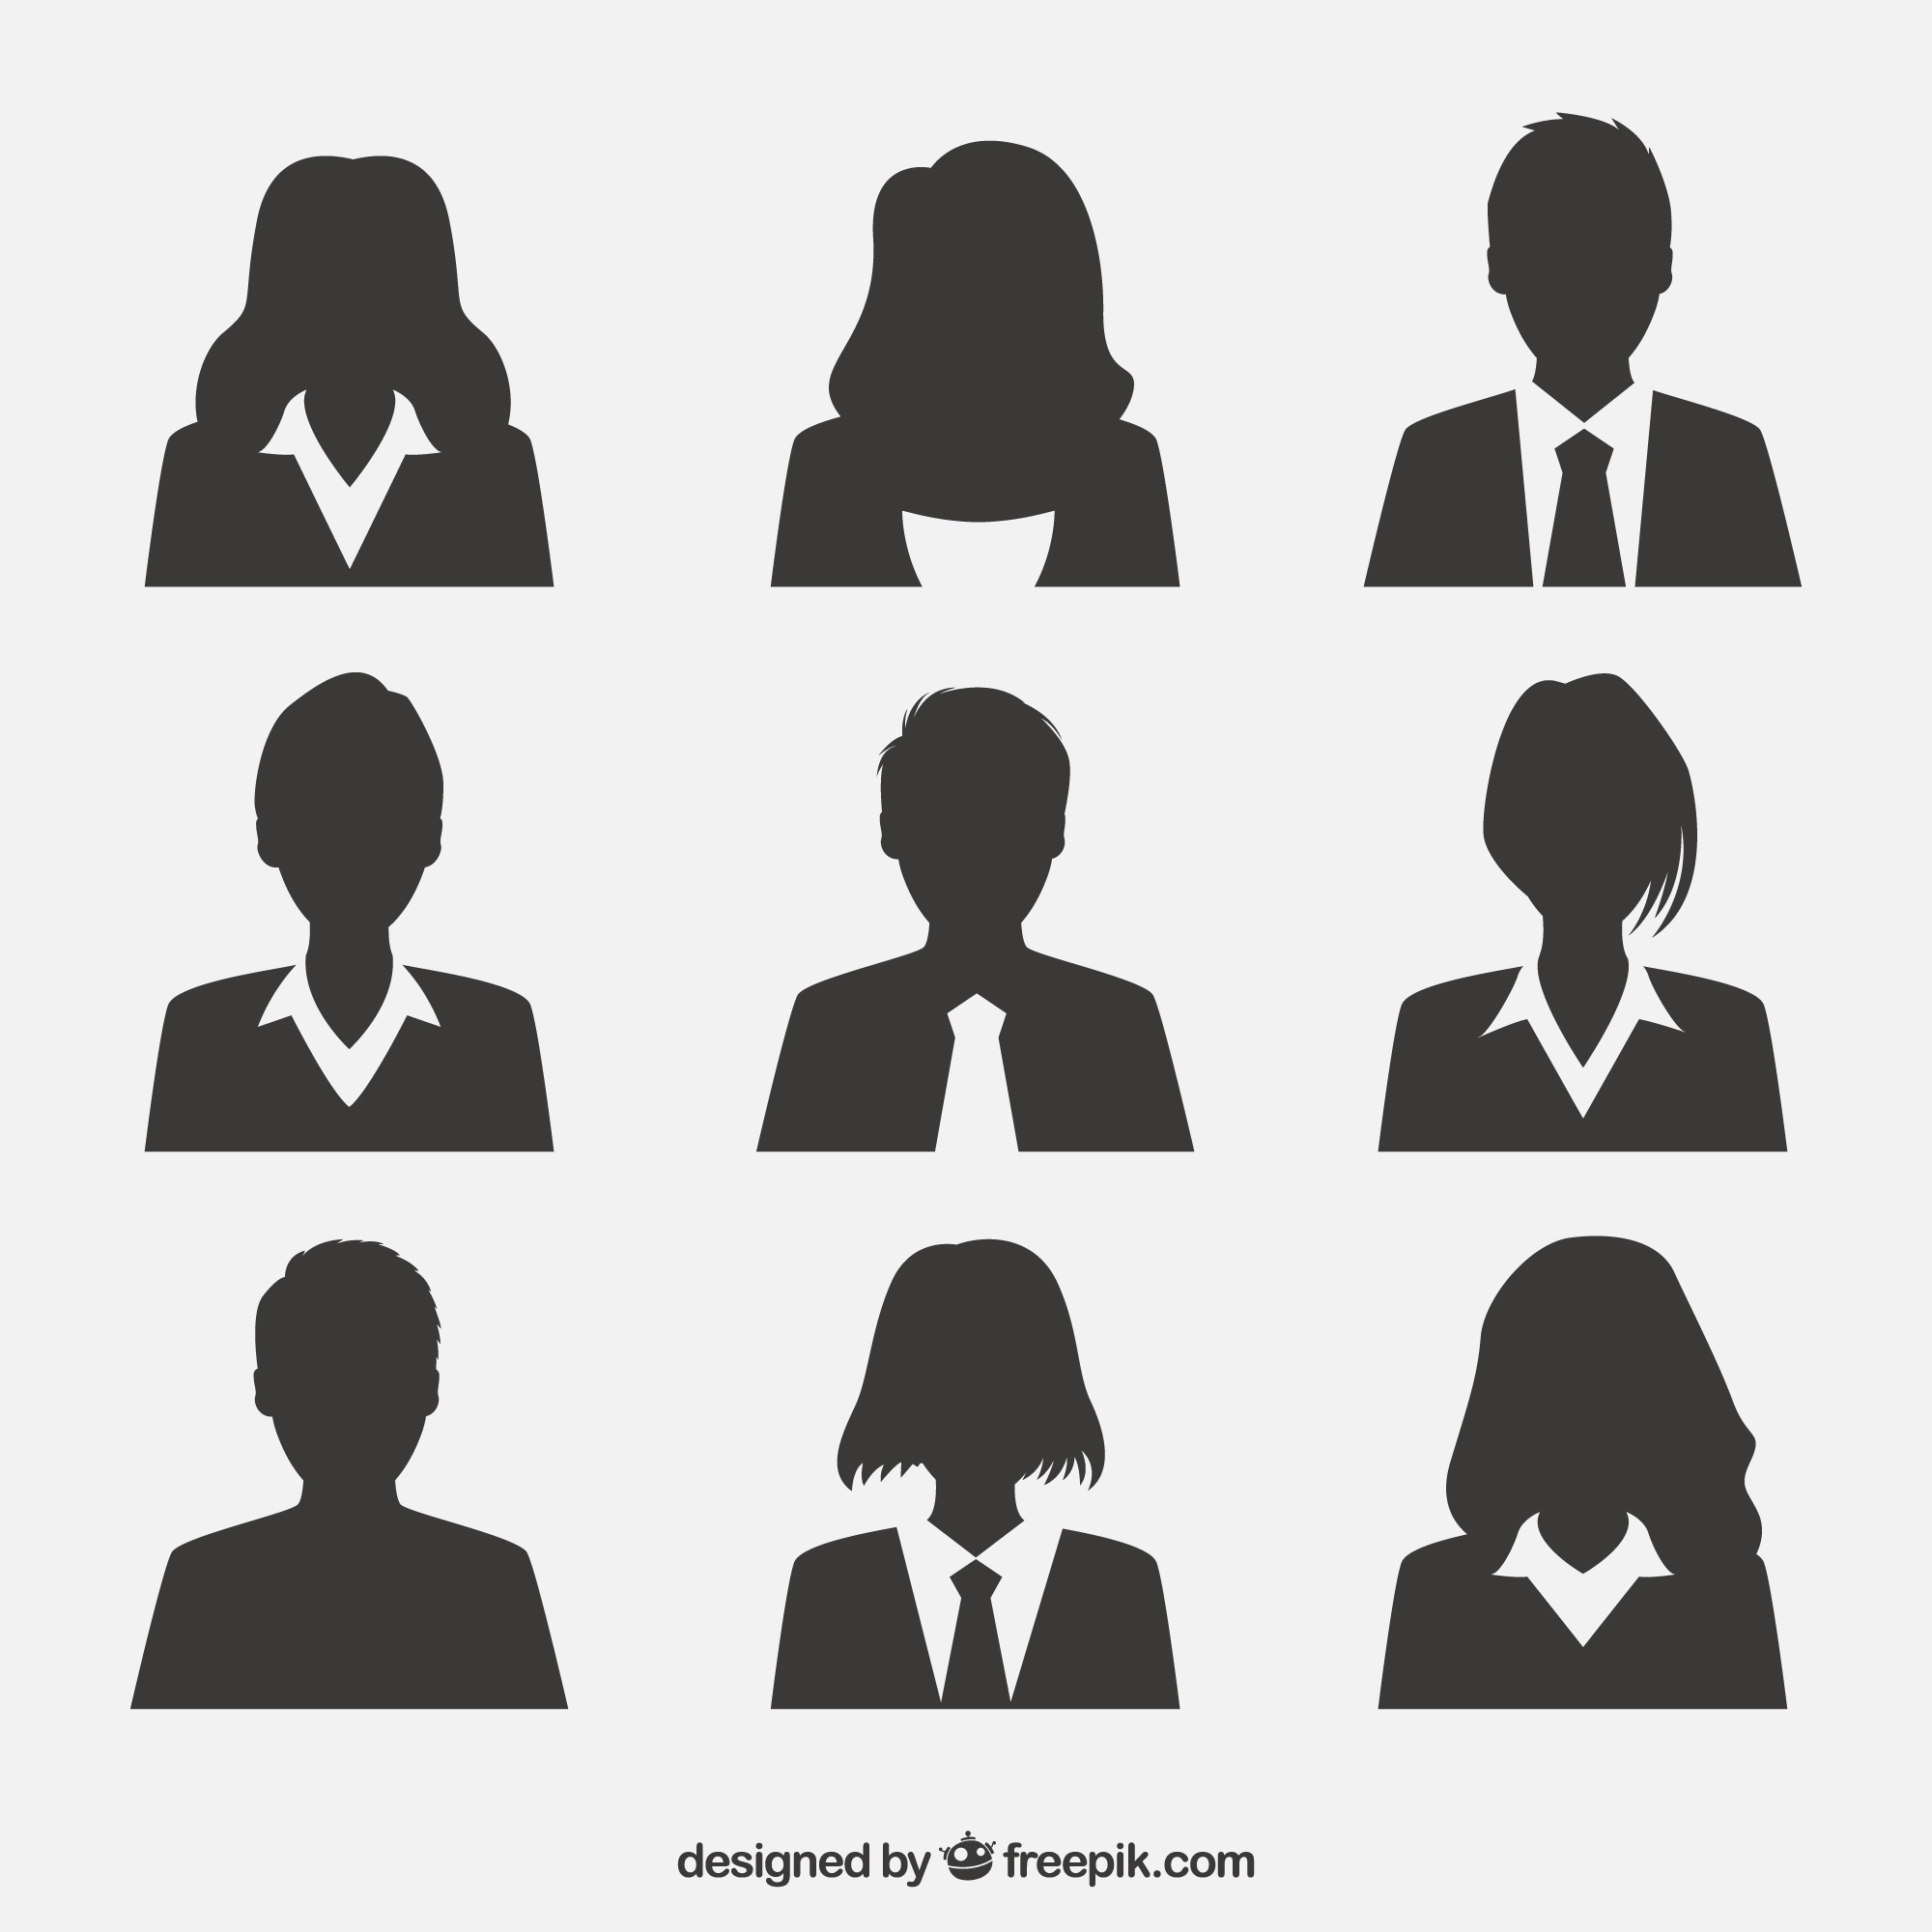 Professional pack of silhouette avatars